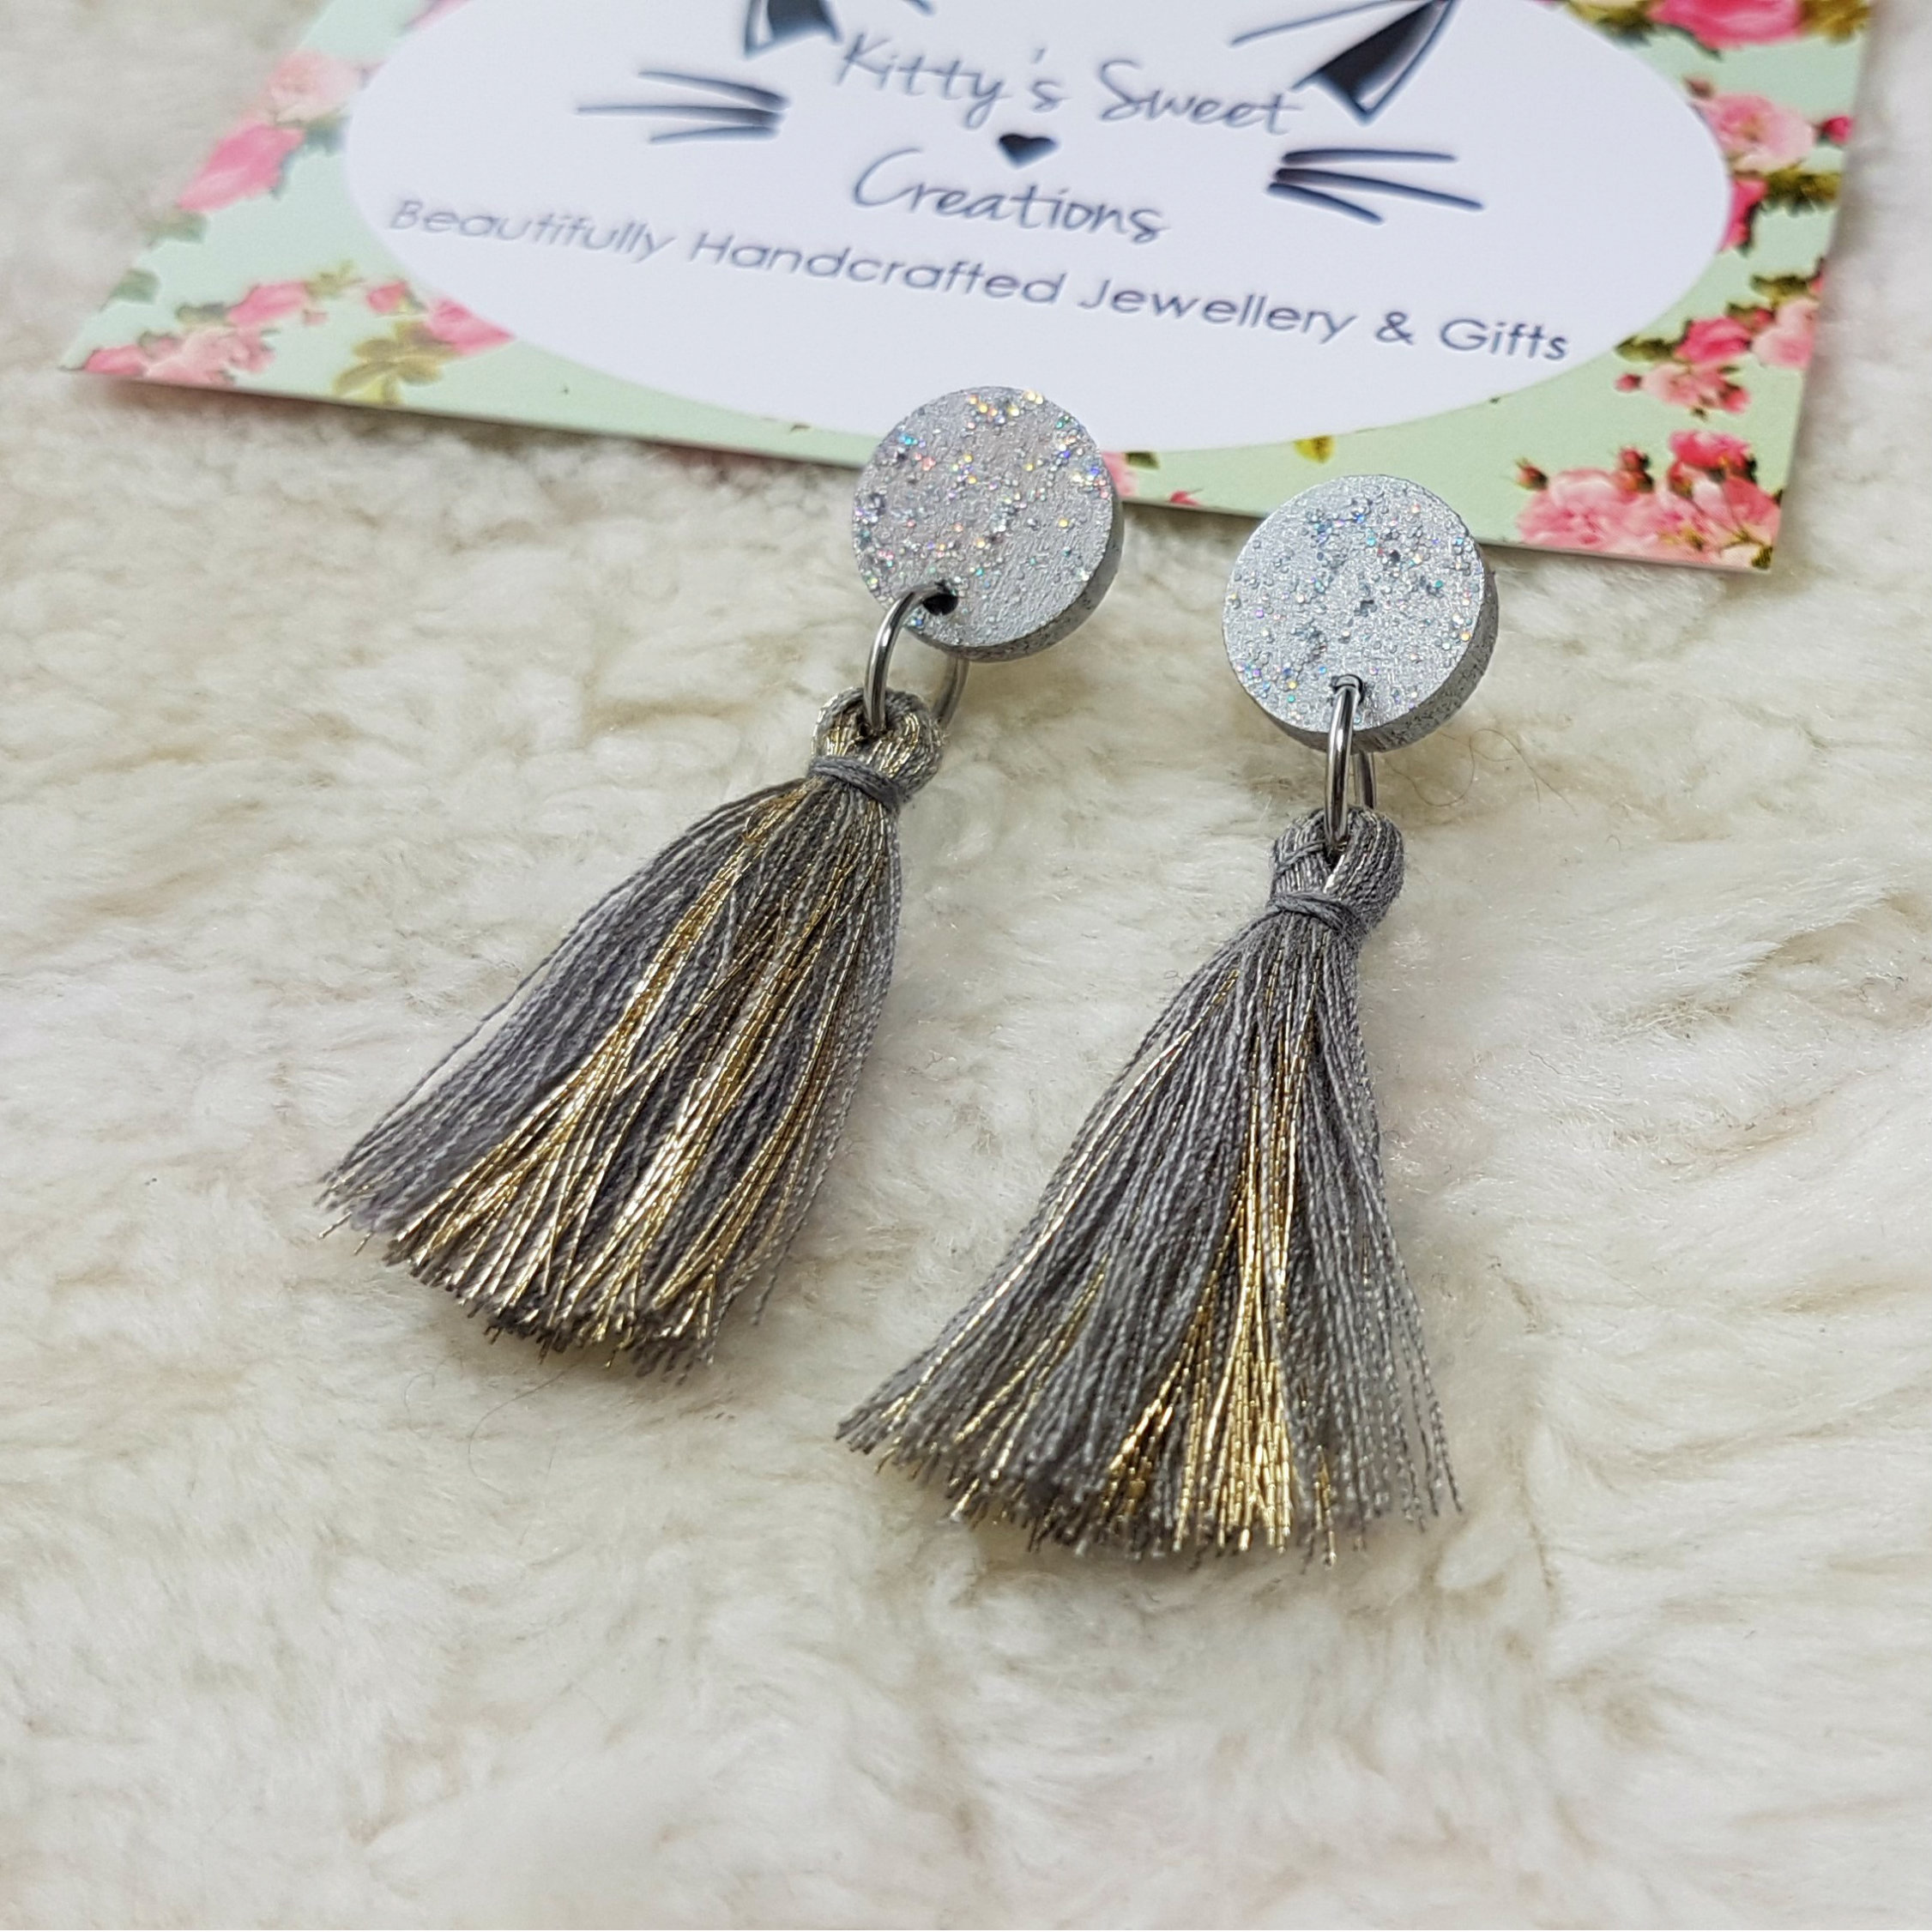 p enlarge women earrings madewell tassel tassle pdp jewelry shopmadewell